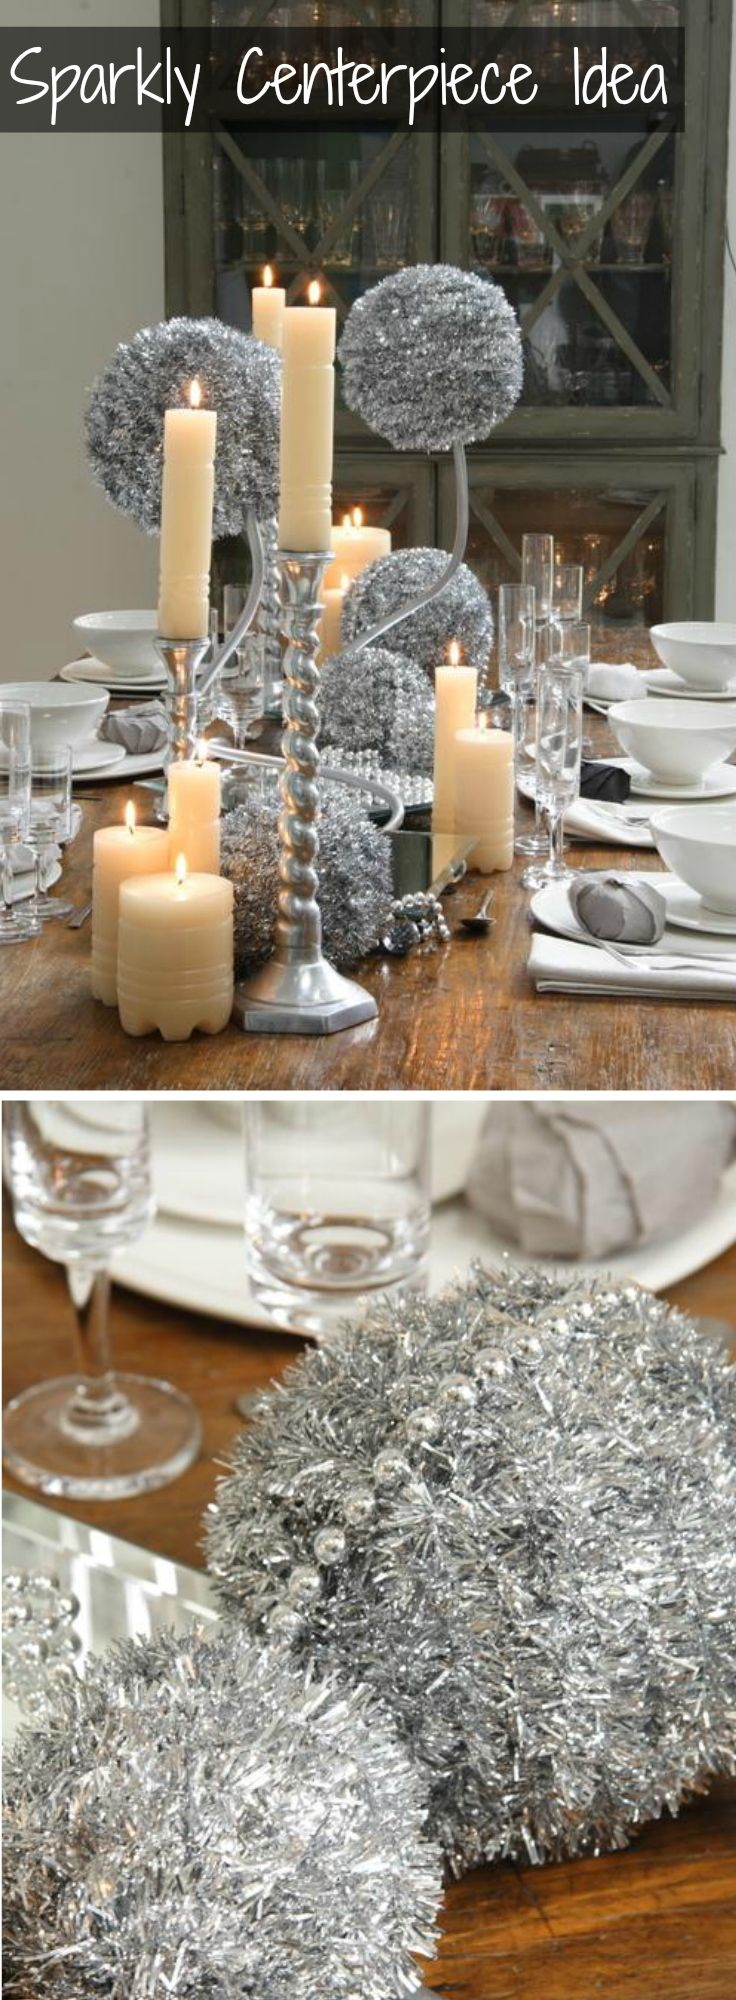 447 best new years images on Pinterest | Happy new years eve, New years eve  and New years eve party